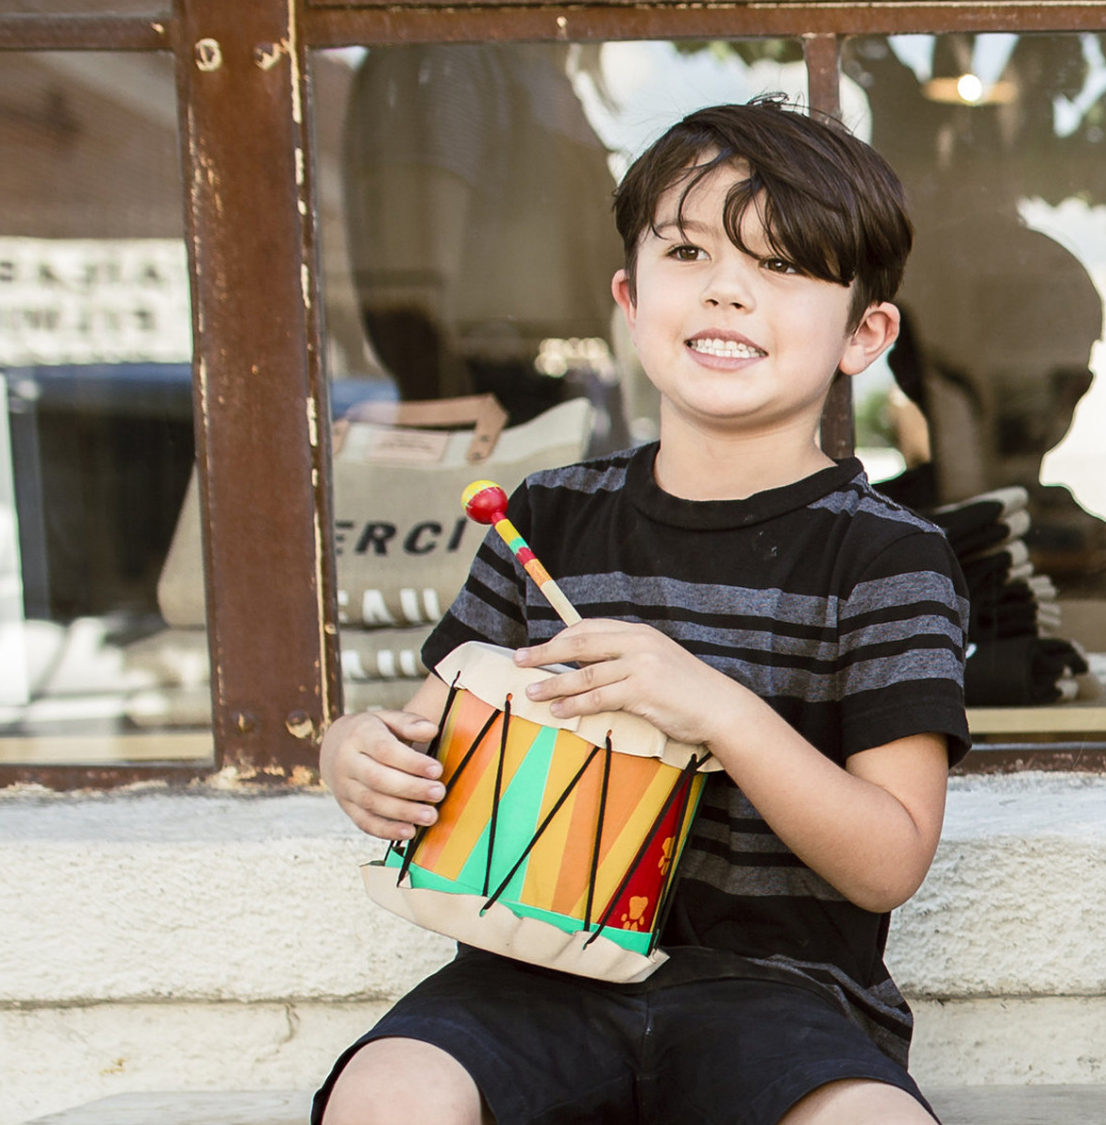 The Circle of Life Drum kids' crafting kit is inspired by Disney's The Lion King and comes with everything your child needs to put togetherhis own drum for some African music! So cool!